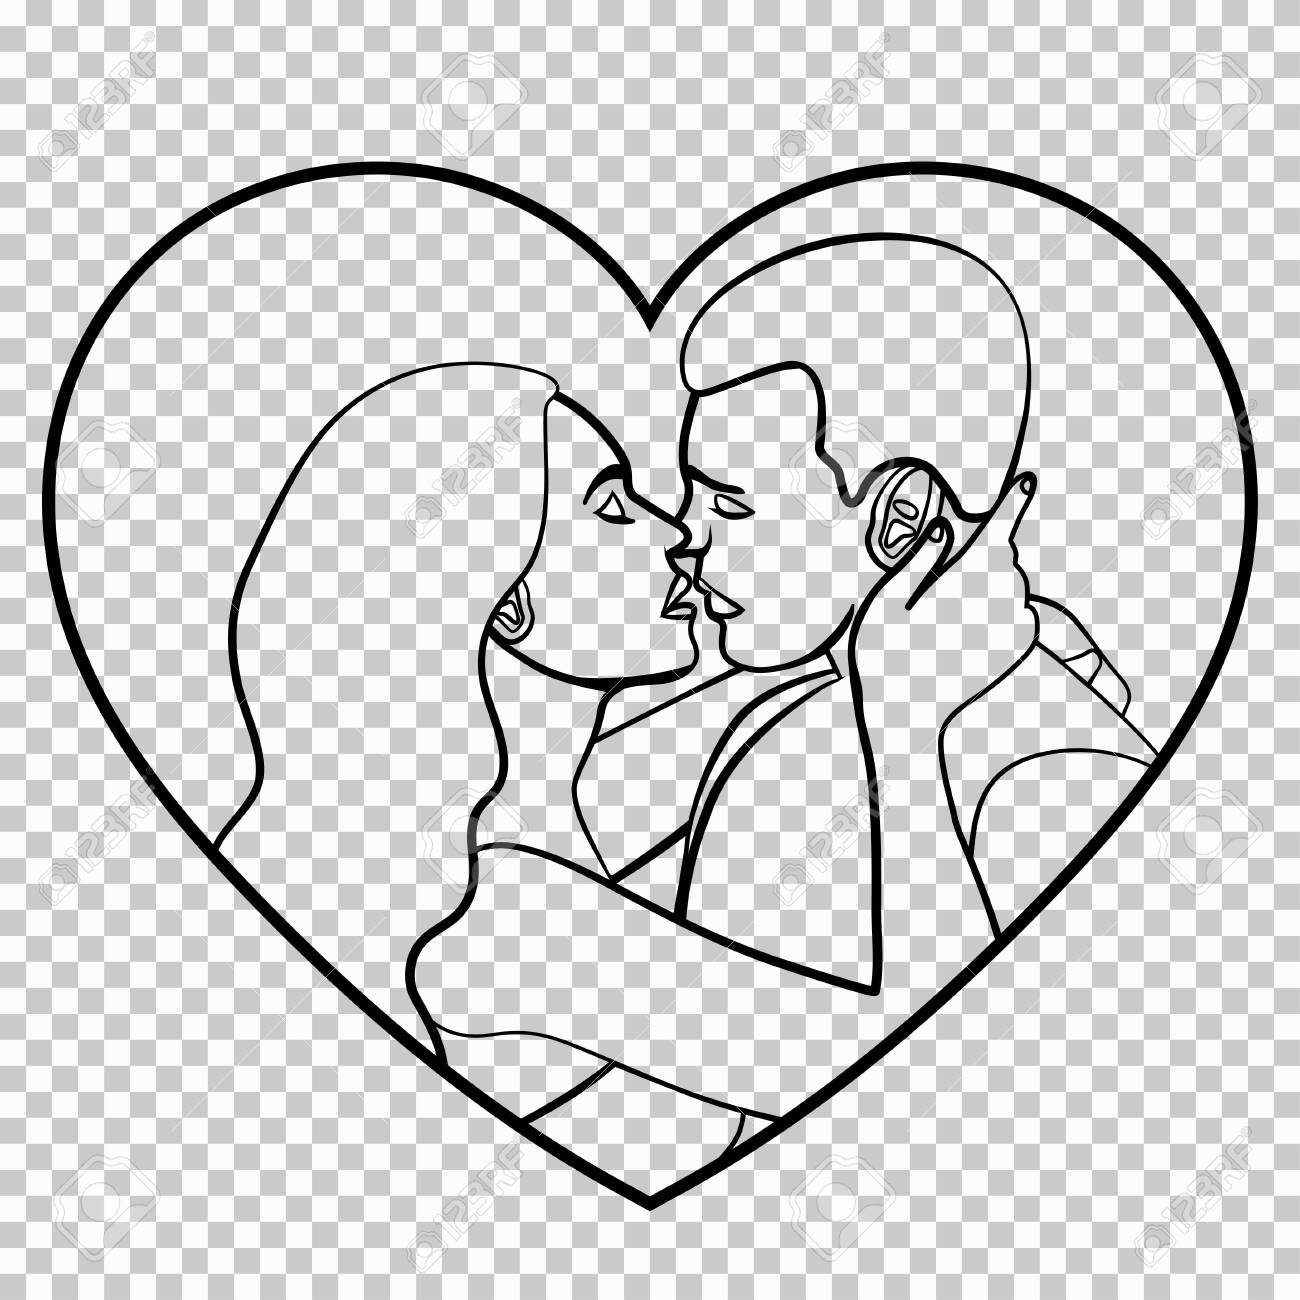 Couple in love stencil silhouette linear black and white outline